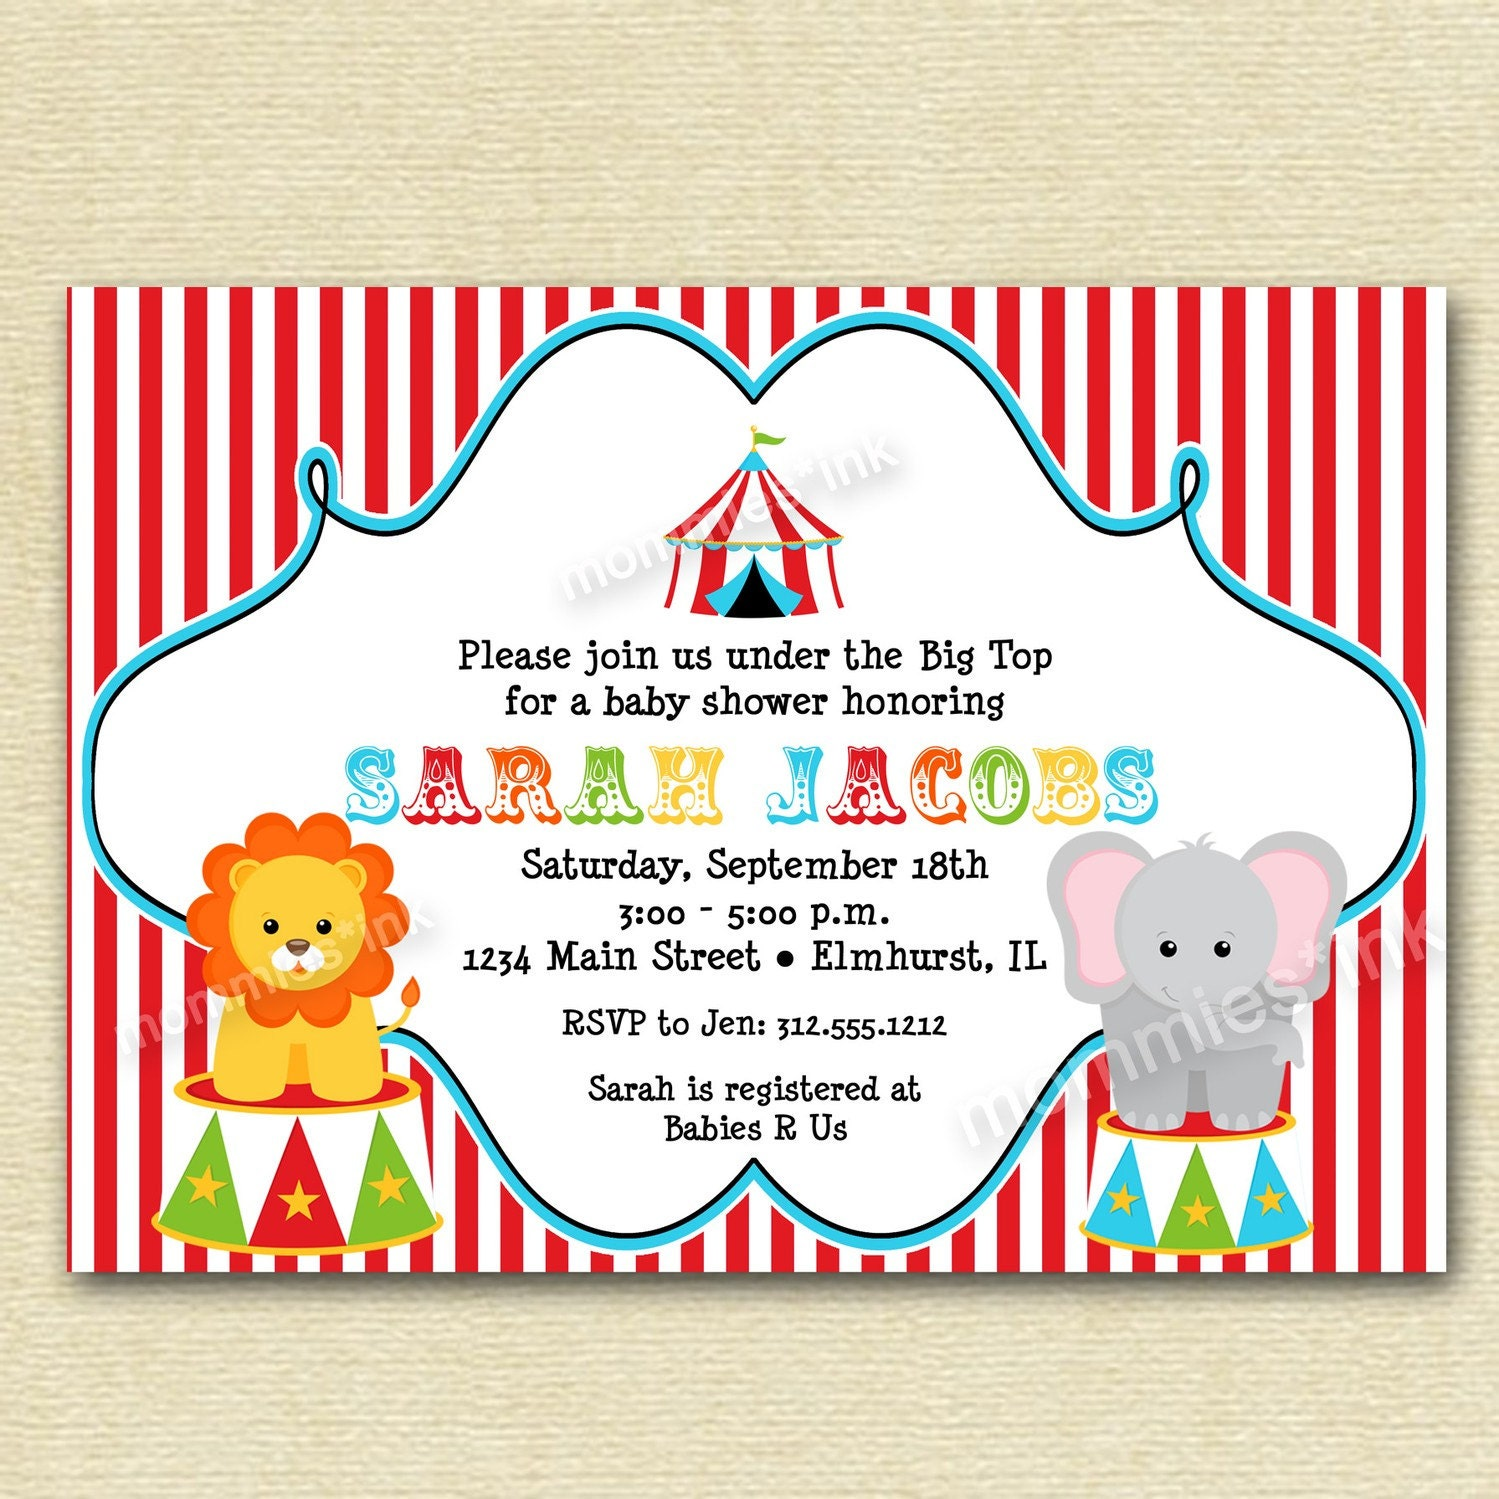 Circus Baby Shower Invitations is an amazing ideas you had to choose for invitation design